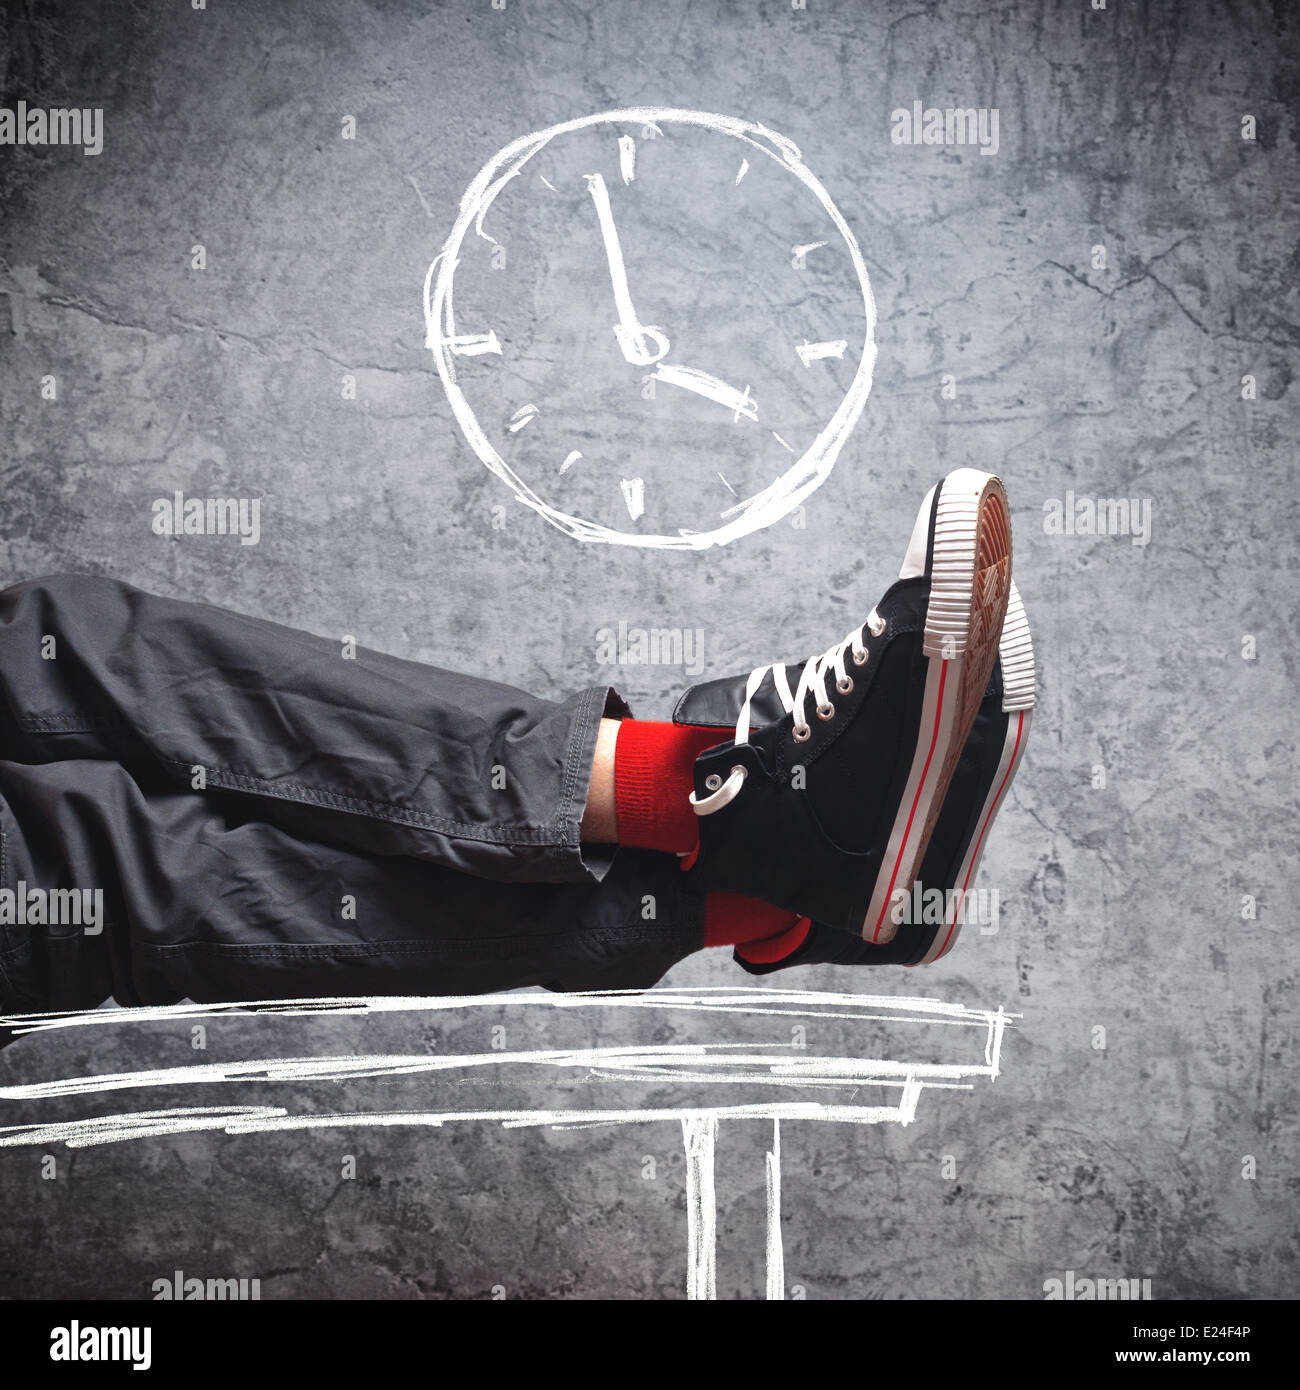 Workday end. Lazy man in sneakers with his legs on the table, few minutes till the end of his working hours. - Stock Image